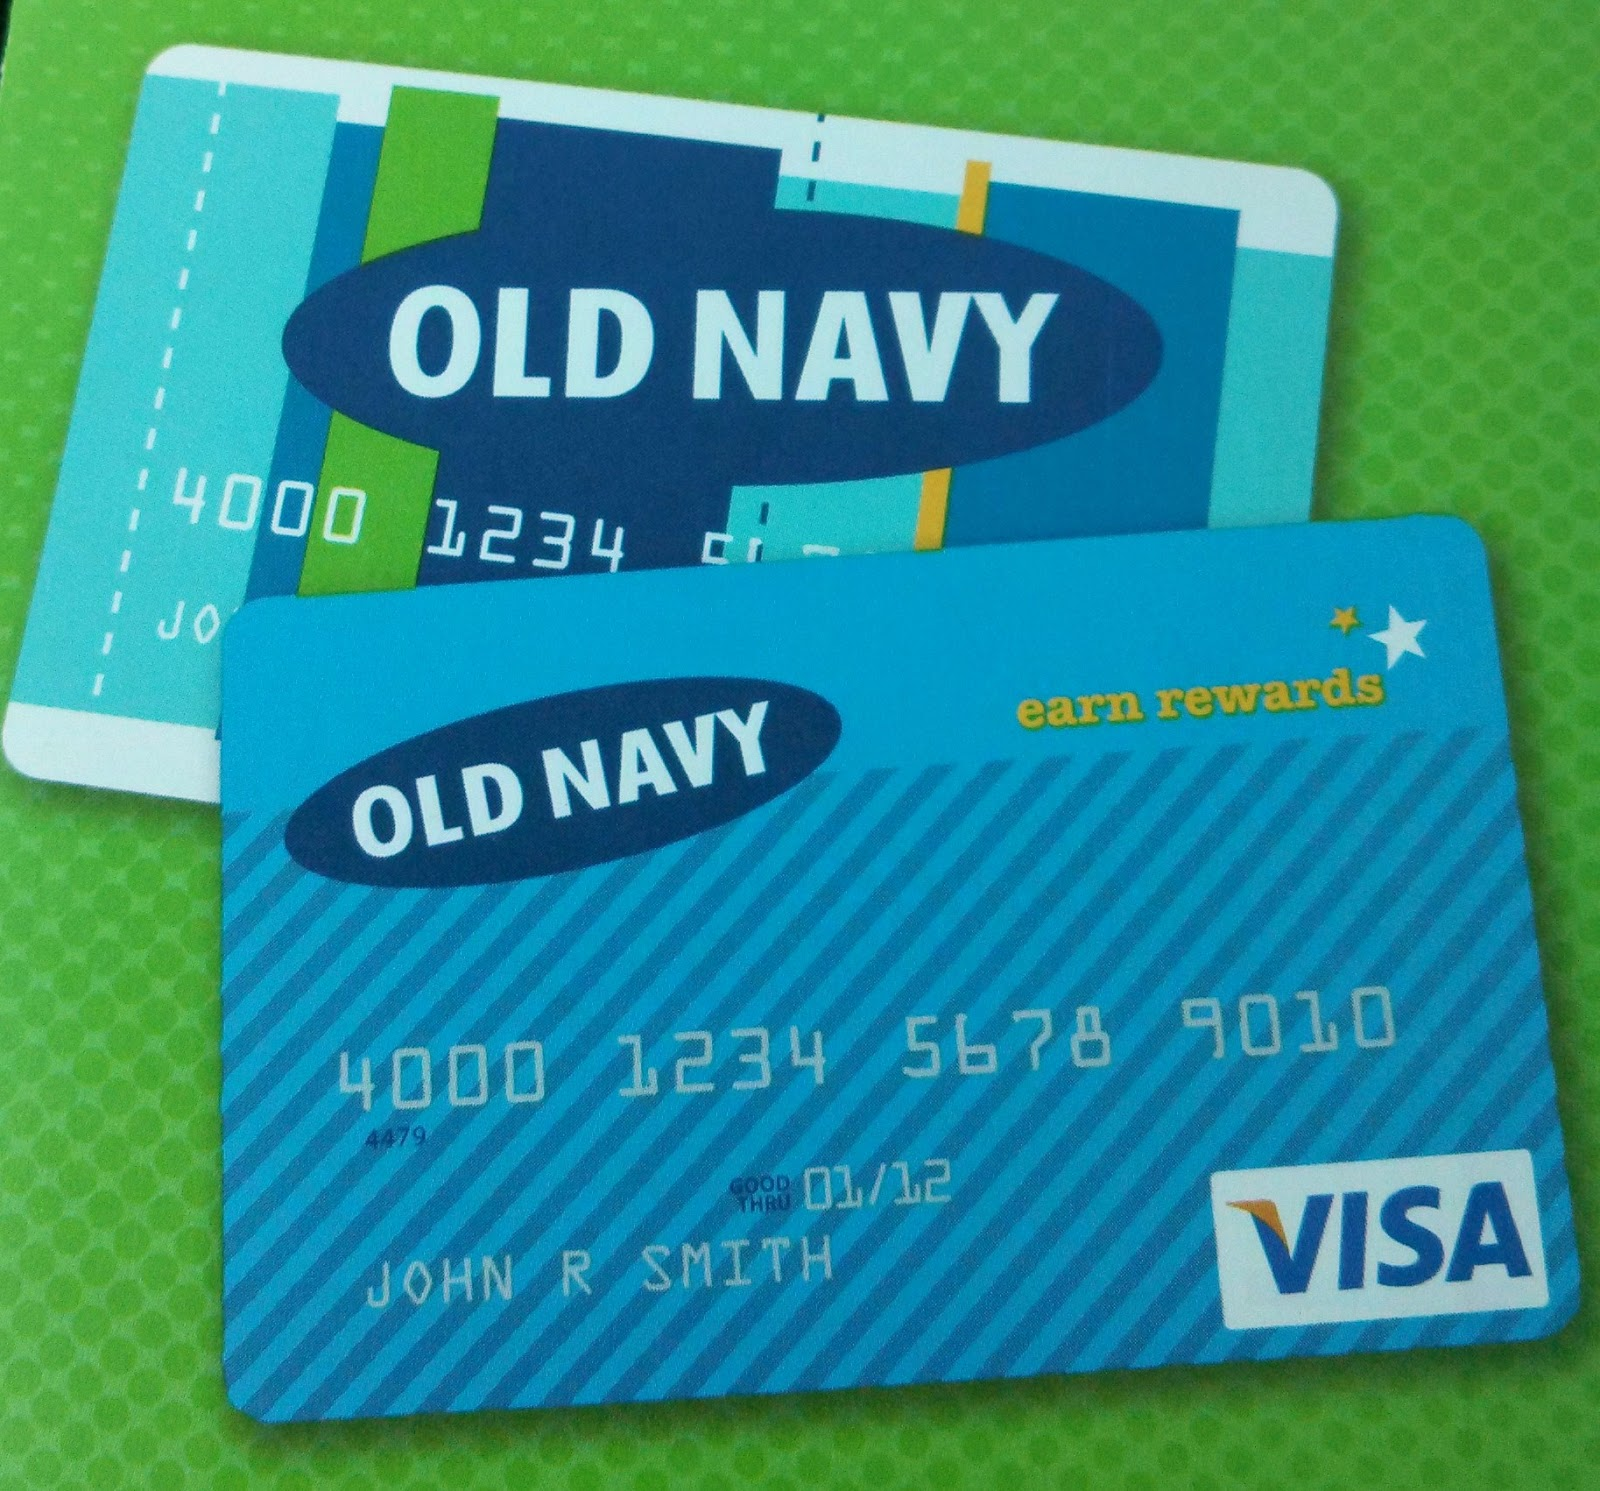 Old Navy Credit Card Internet Customer Service You can contact Customer Service 24 hours/day by calling